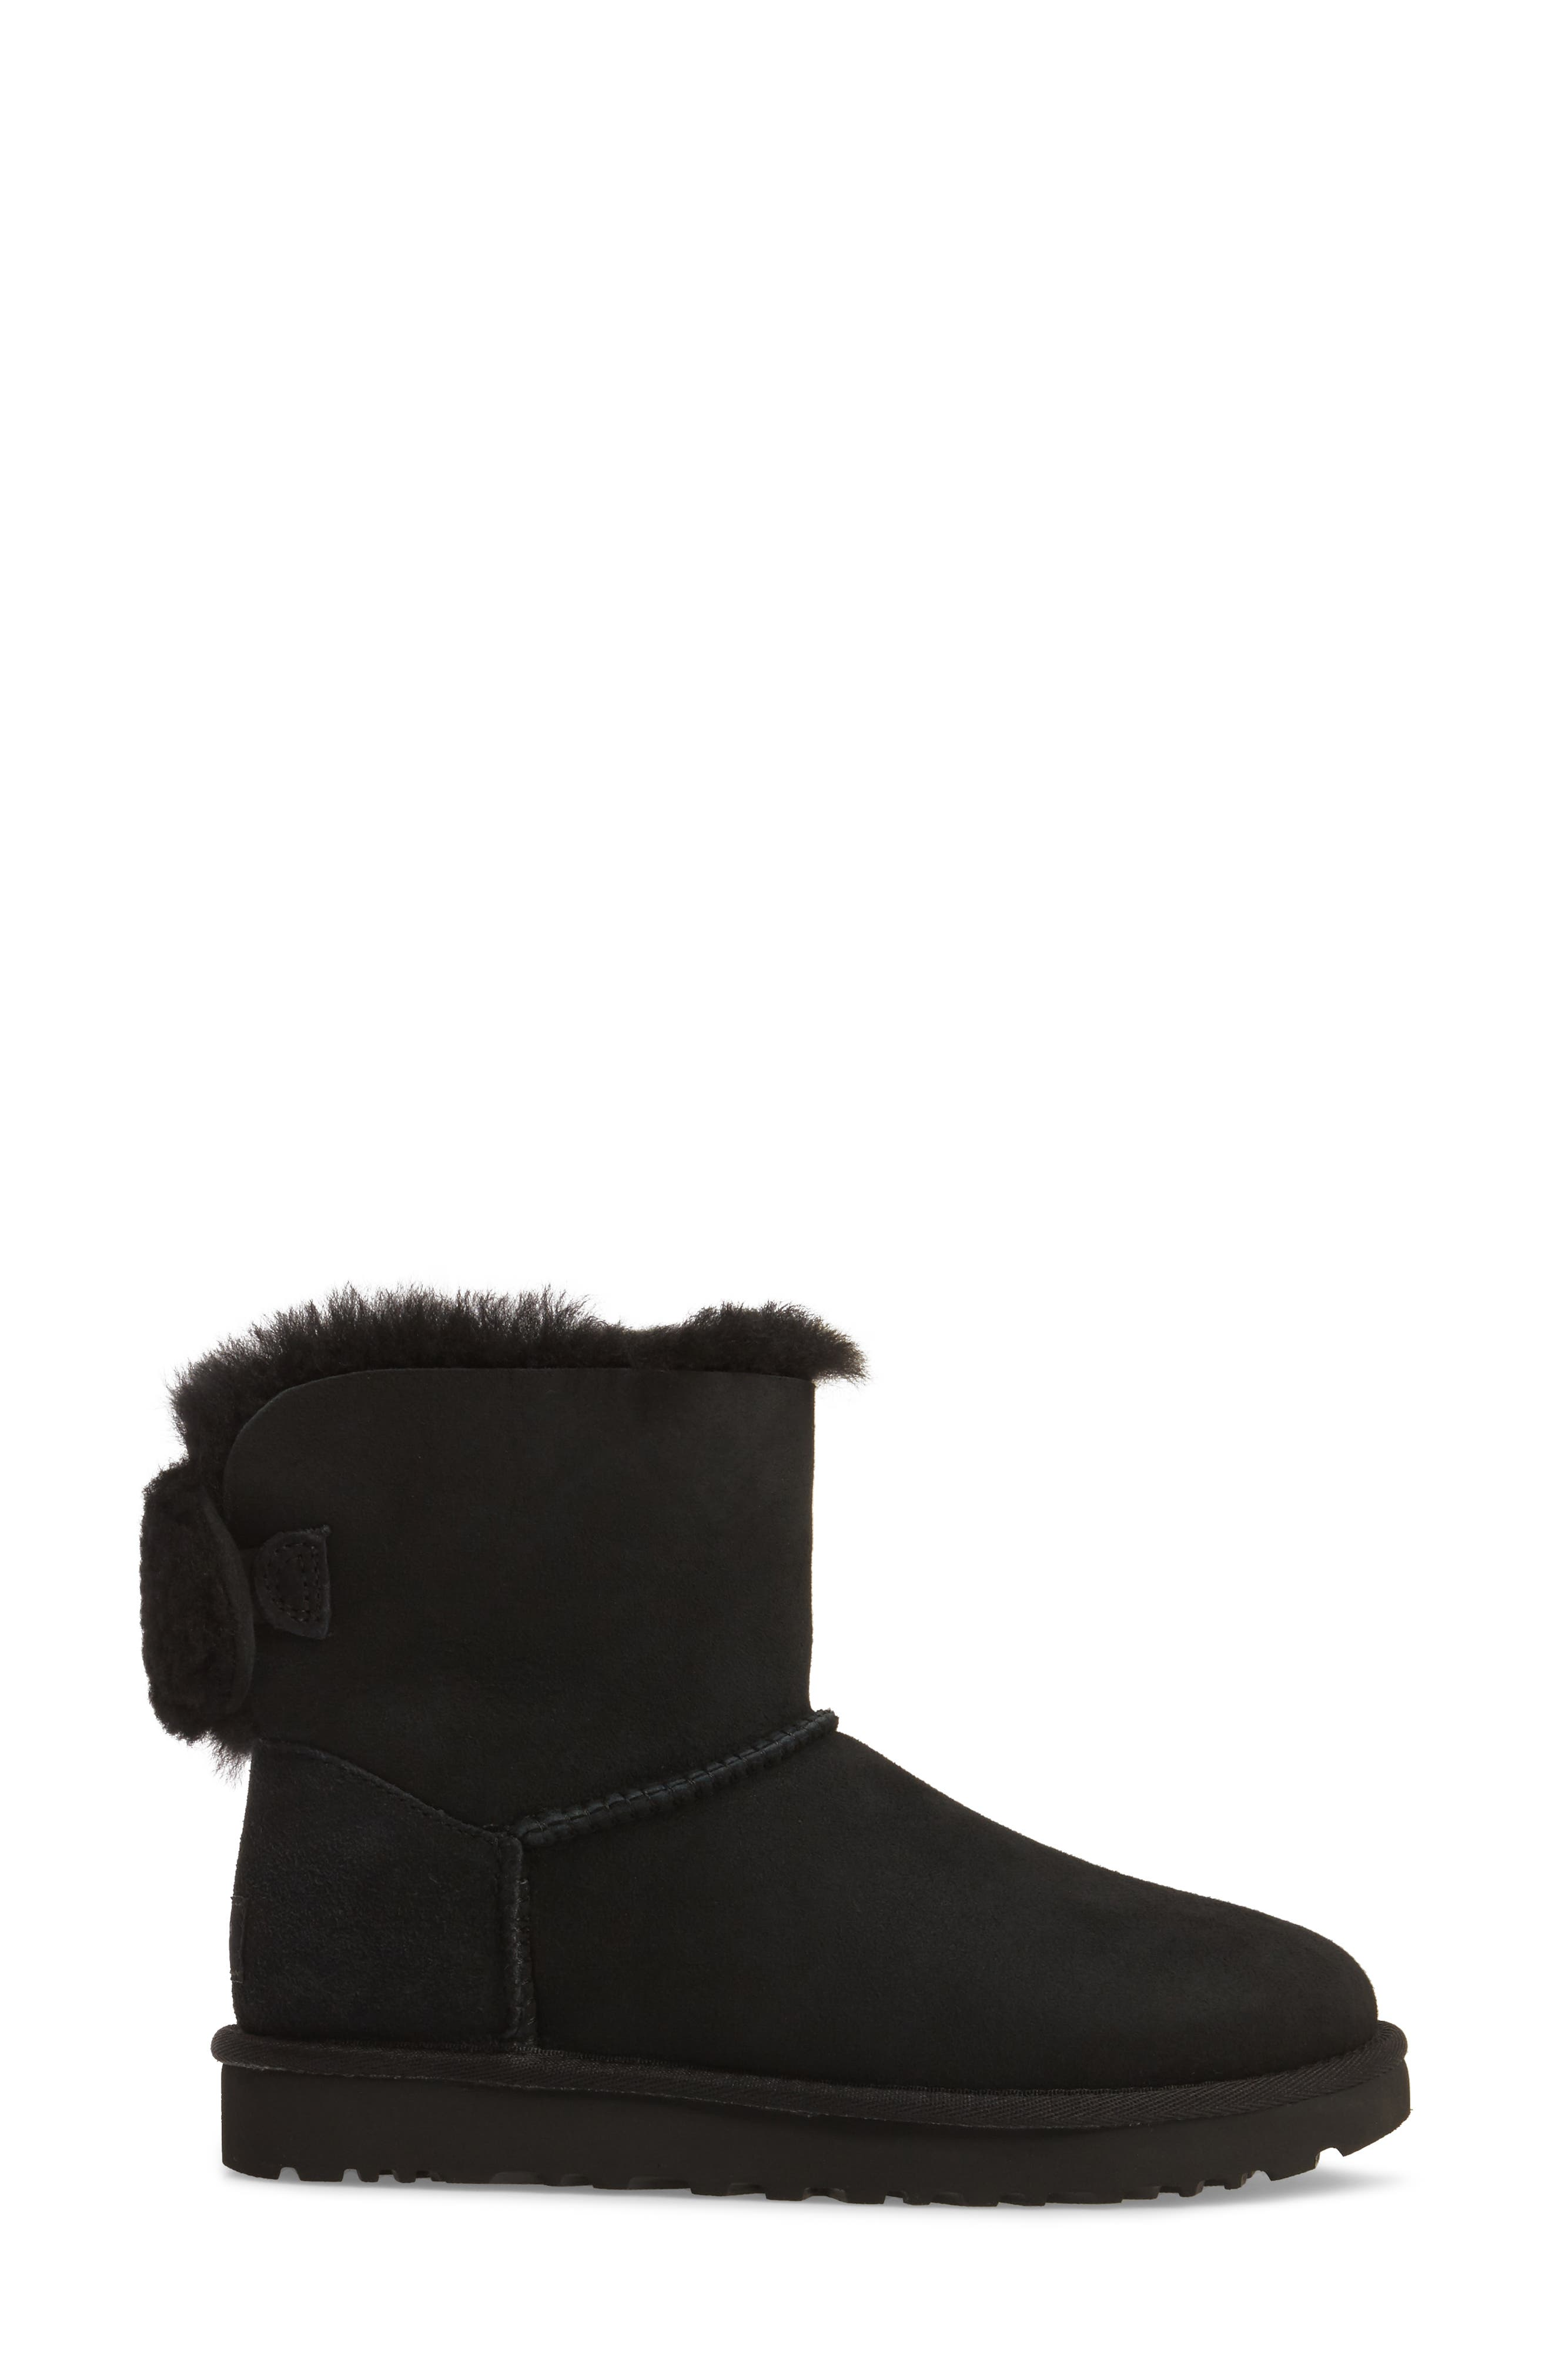 Arielle Genuine Shearling Bootie,                             Alternate thumbnail 7, color,